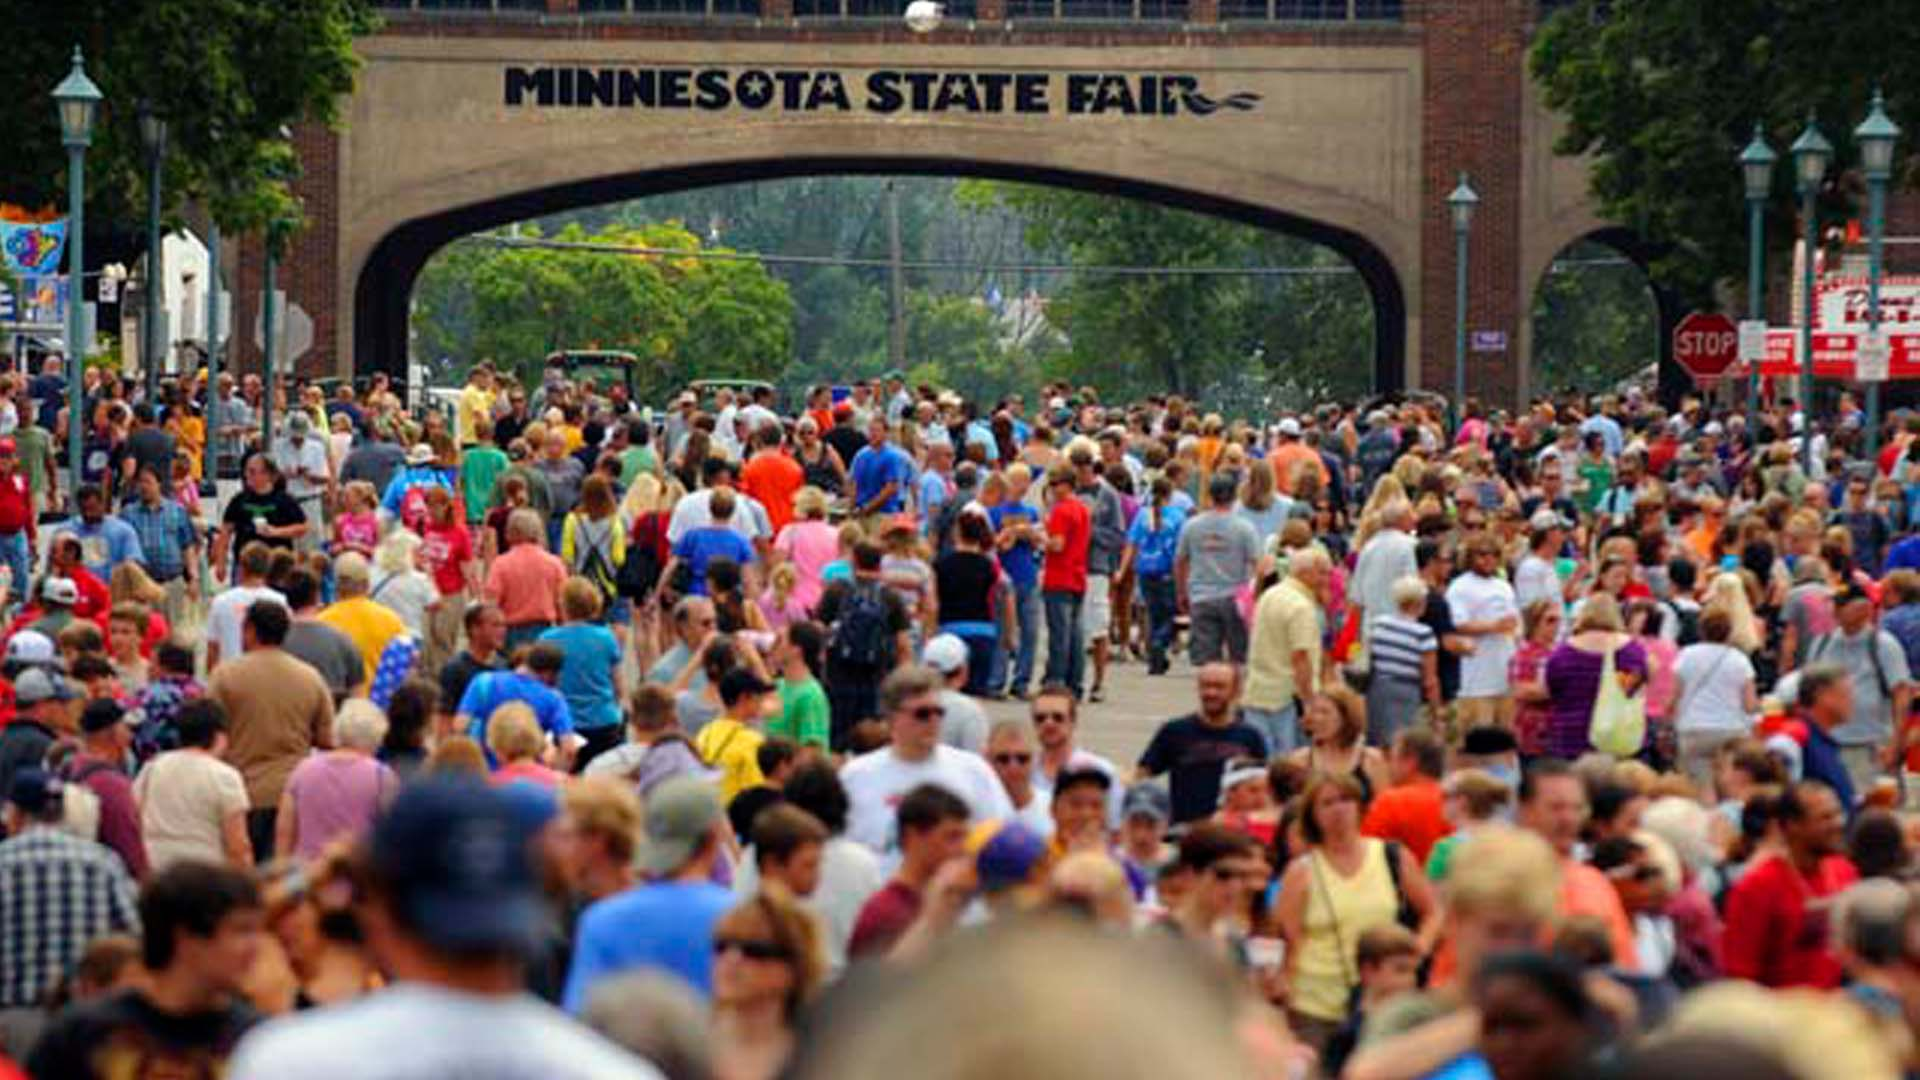 Minnesota State Fairgrounds